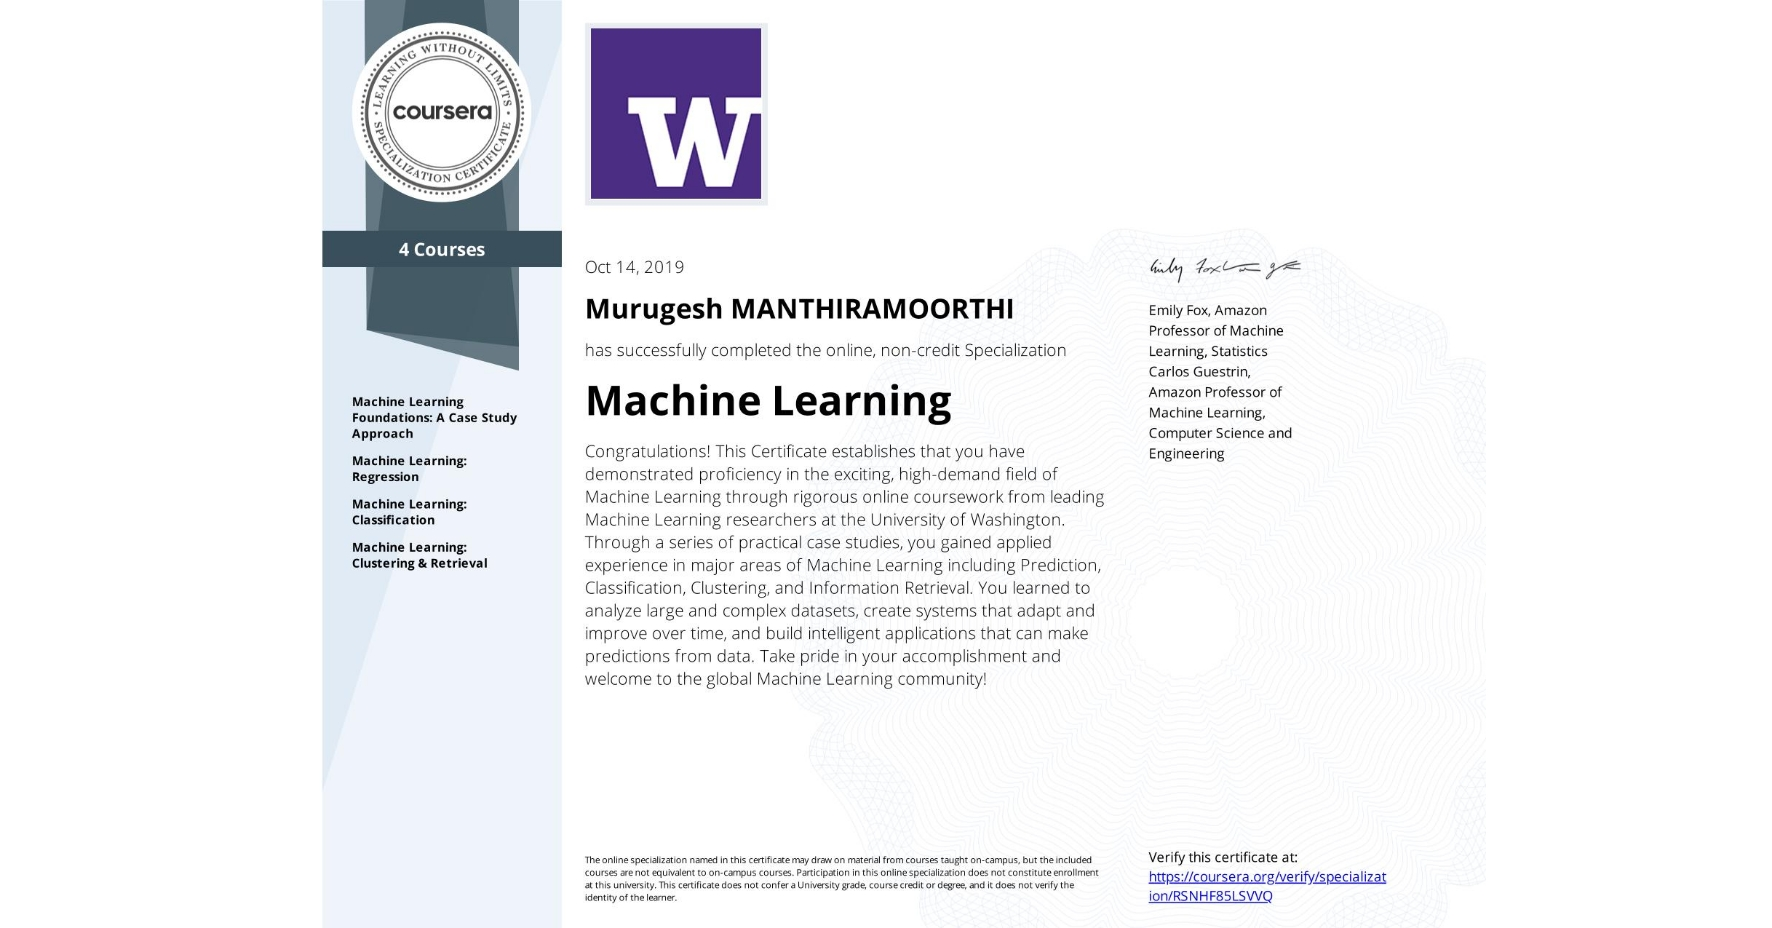 View certificate for Murugesh Manthiramoorthi, Machine Learning, offered through Coursera. Congratulations! This Certificate establishes that you have demonstrated proficiency in the exciting, high-demand field of Machine Learning through rigorous online coursework from leading Machine Learning researchers at the University of Washington. Through a series of practical case studies, you gained applied experience in major areas of Machine Learning including Prediction, Classification, Clustering, and Information Retrieval. You learned to analyze large and complex datasets, create systems that adapt and improve over time, and build intelligent applications that can make predictions from data. Take pride in your accomplishment and welcome to the global Machine Learning community!